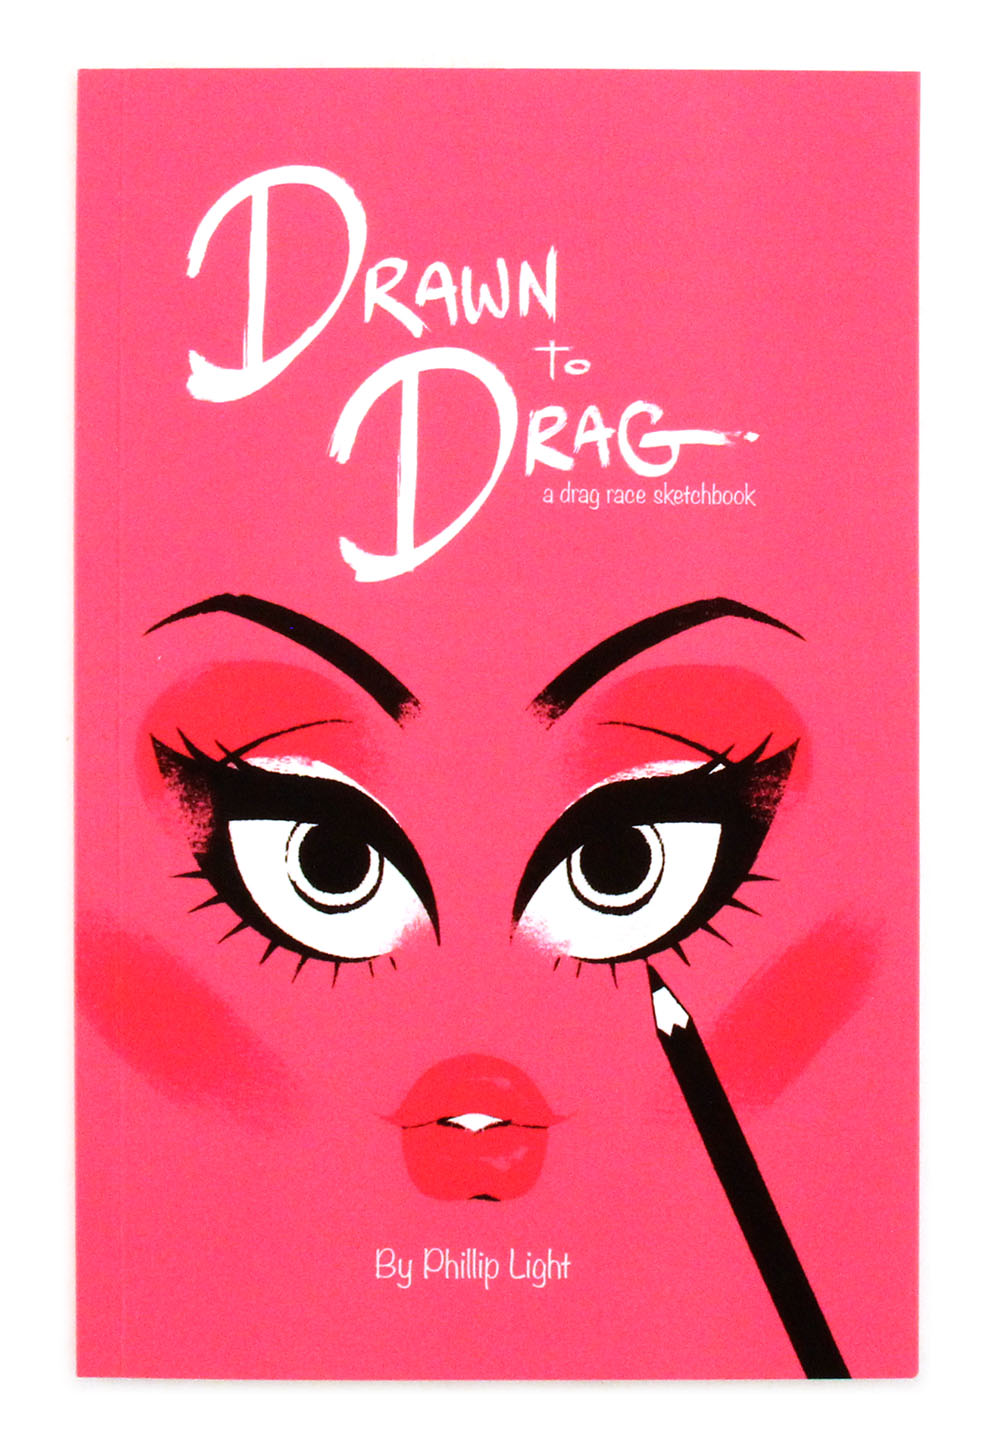 Drawn to Drag: A Drag Race Sketchbook, Phillip Light